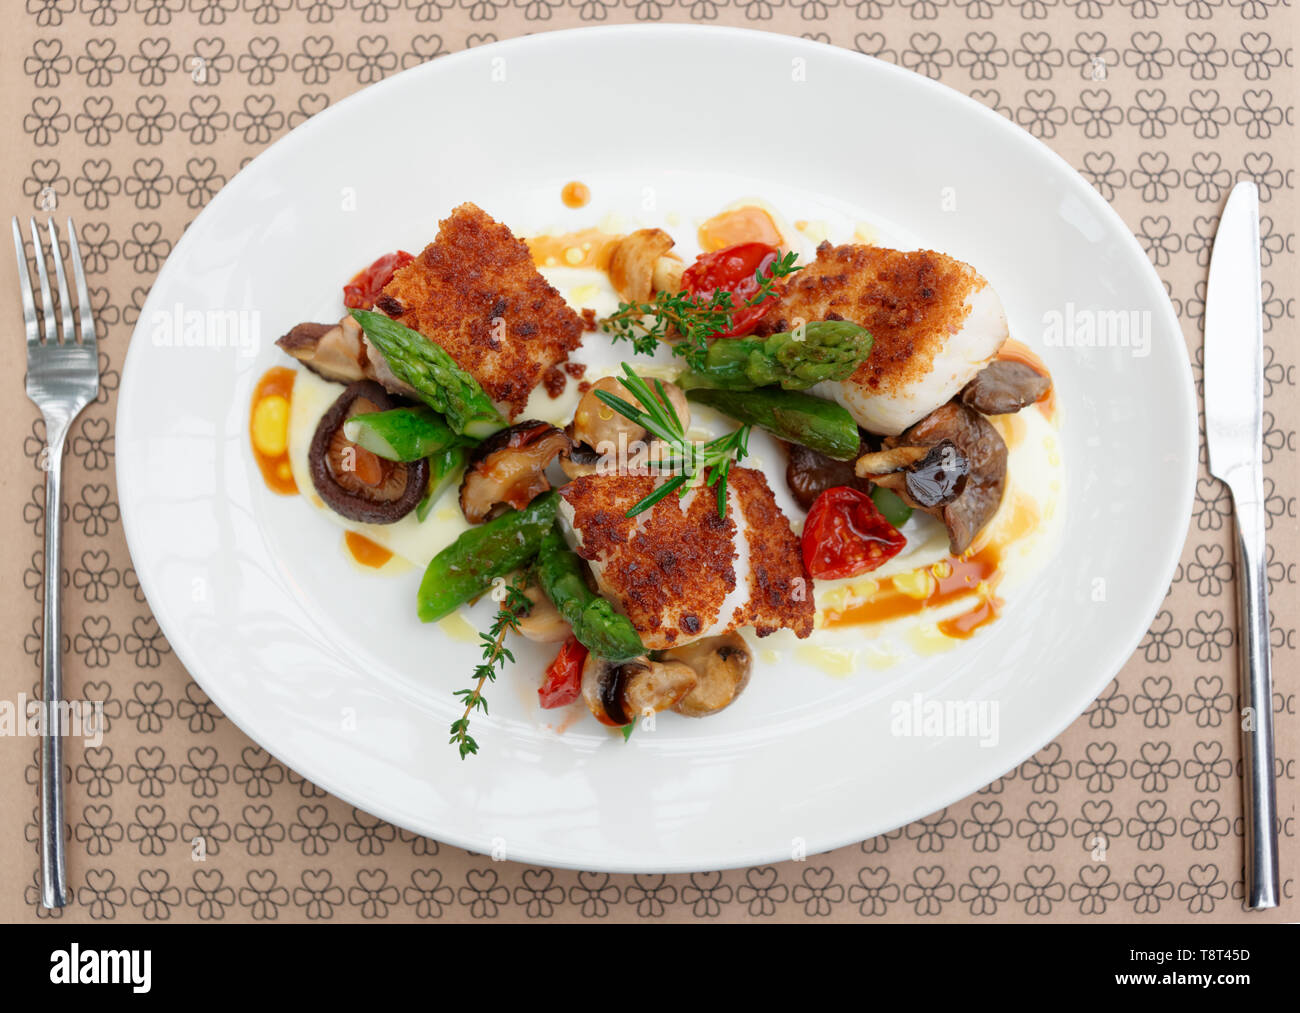 Fish fillet with mushrooms and asparagus on restaurant table - Stock Image